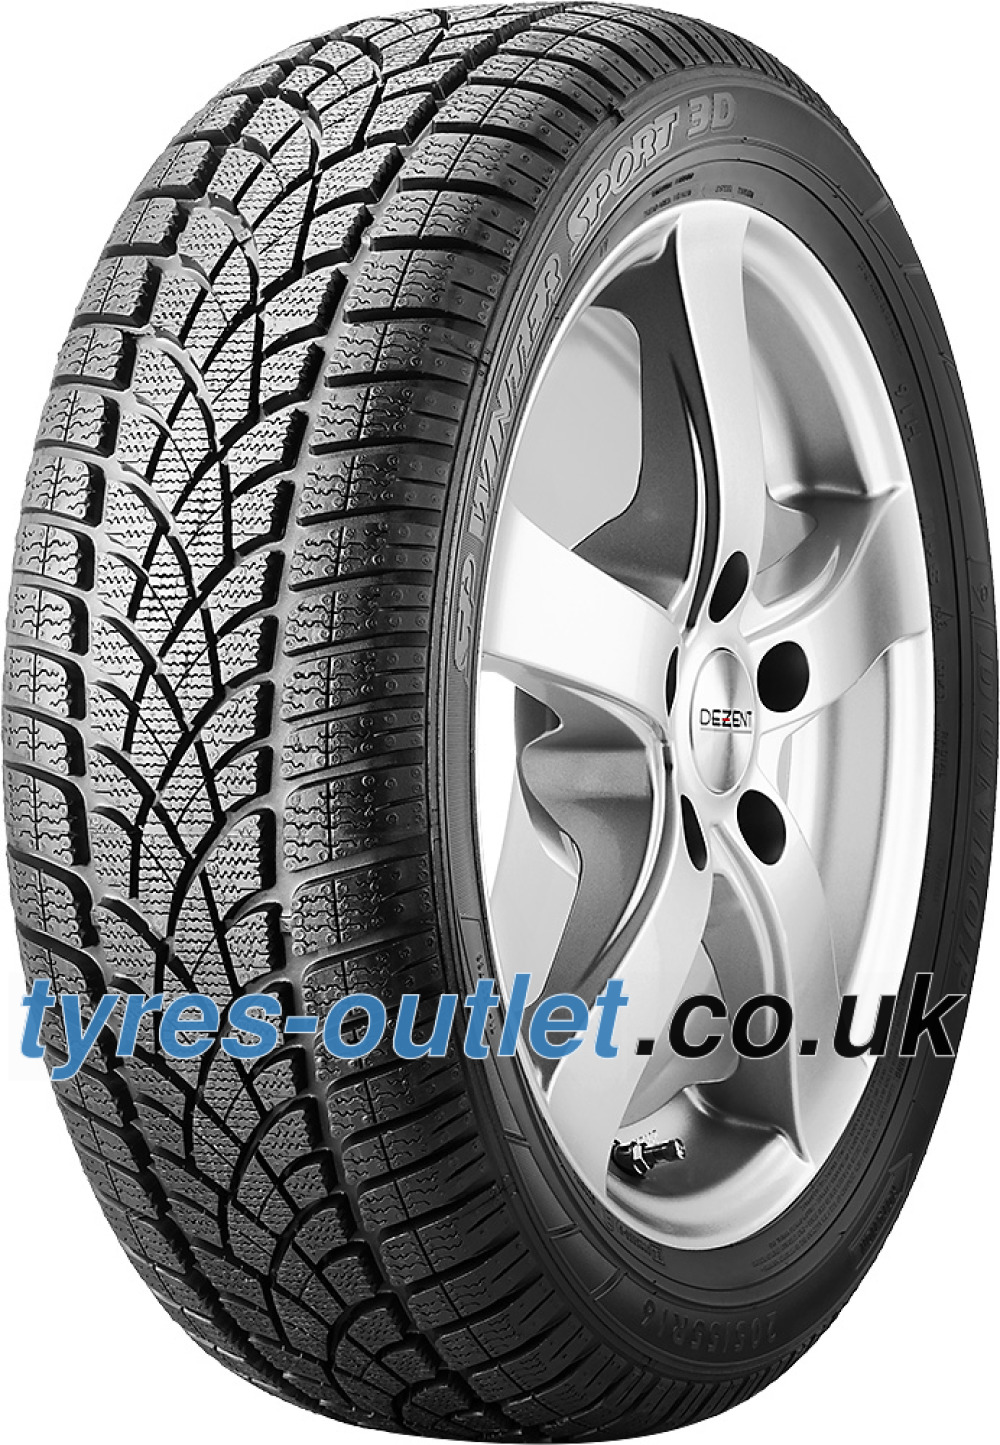 Dunlop SP Winter Sport 3D ( 205/50 R17 93H XL , with rim protection (MFS) )